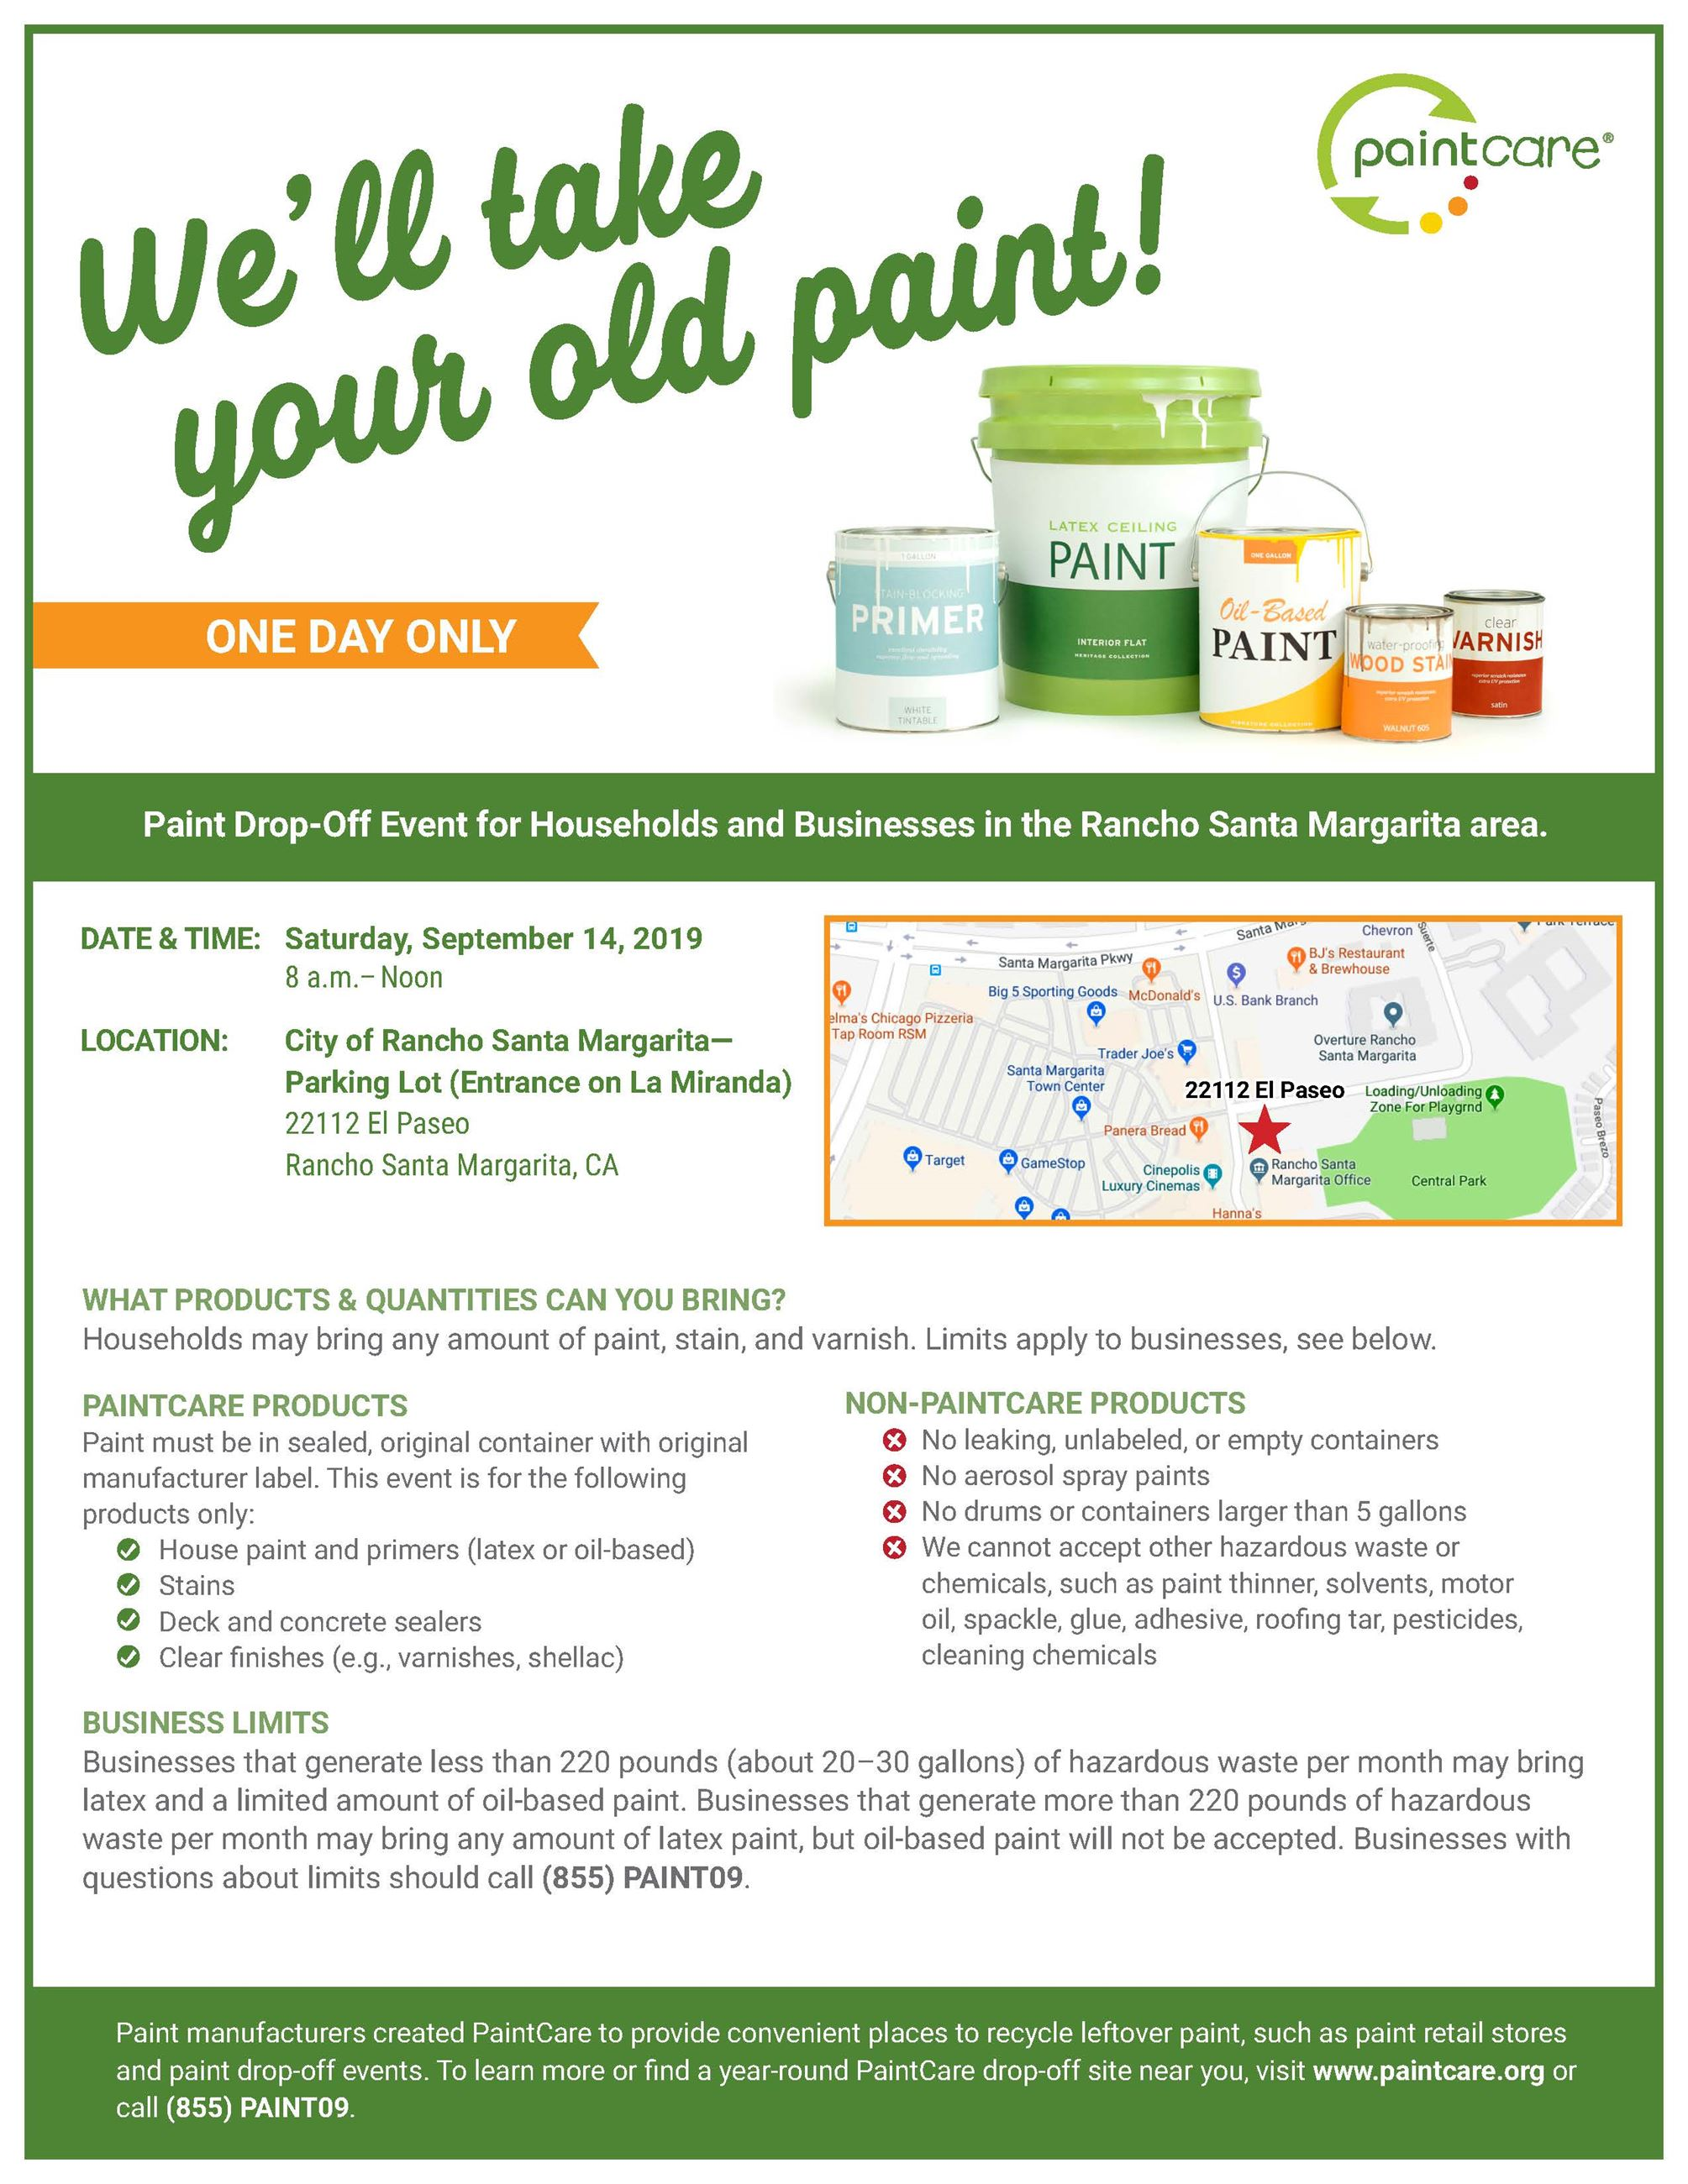 Paint Drop-Off Event Flyer - September 12, 2019